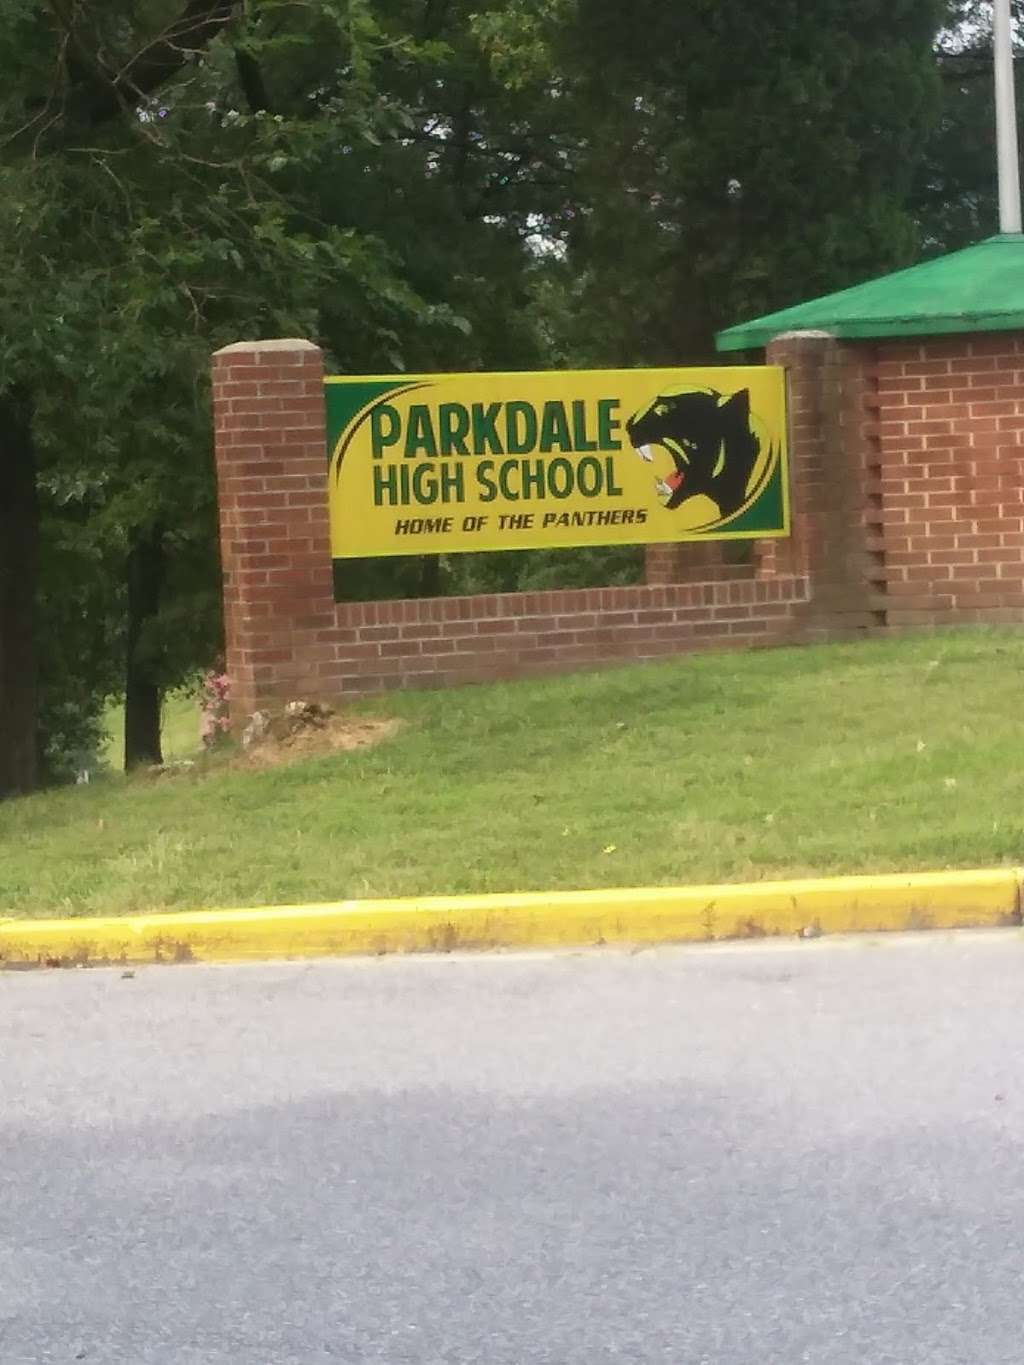 Parkdale High School - school    Photo 1 of 2   Address: 6001 Good Luck Rd, Riverdale, MD 20737, USA   Phone: (301) 513-5700